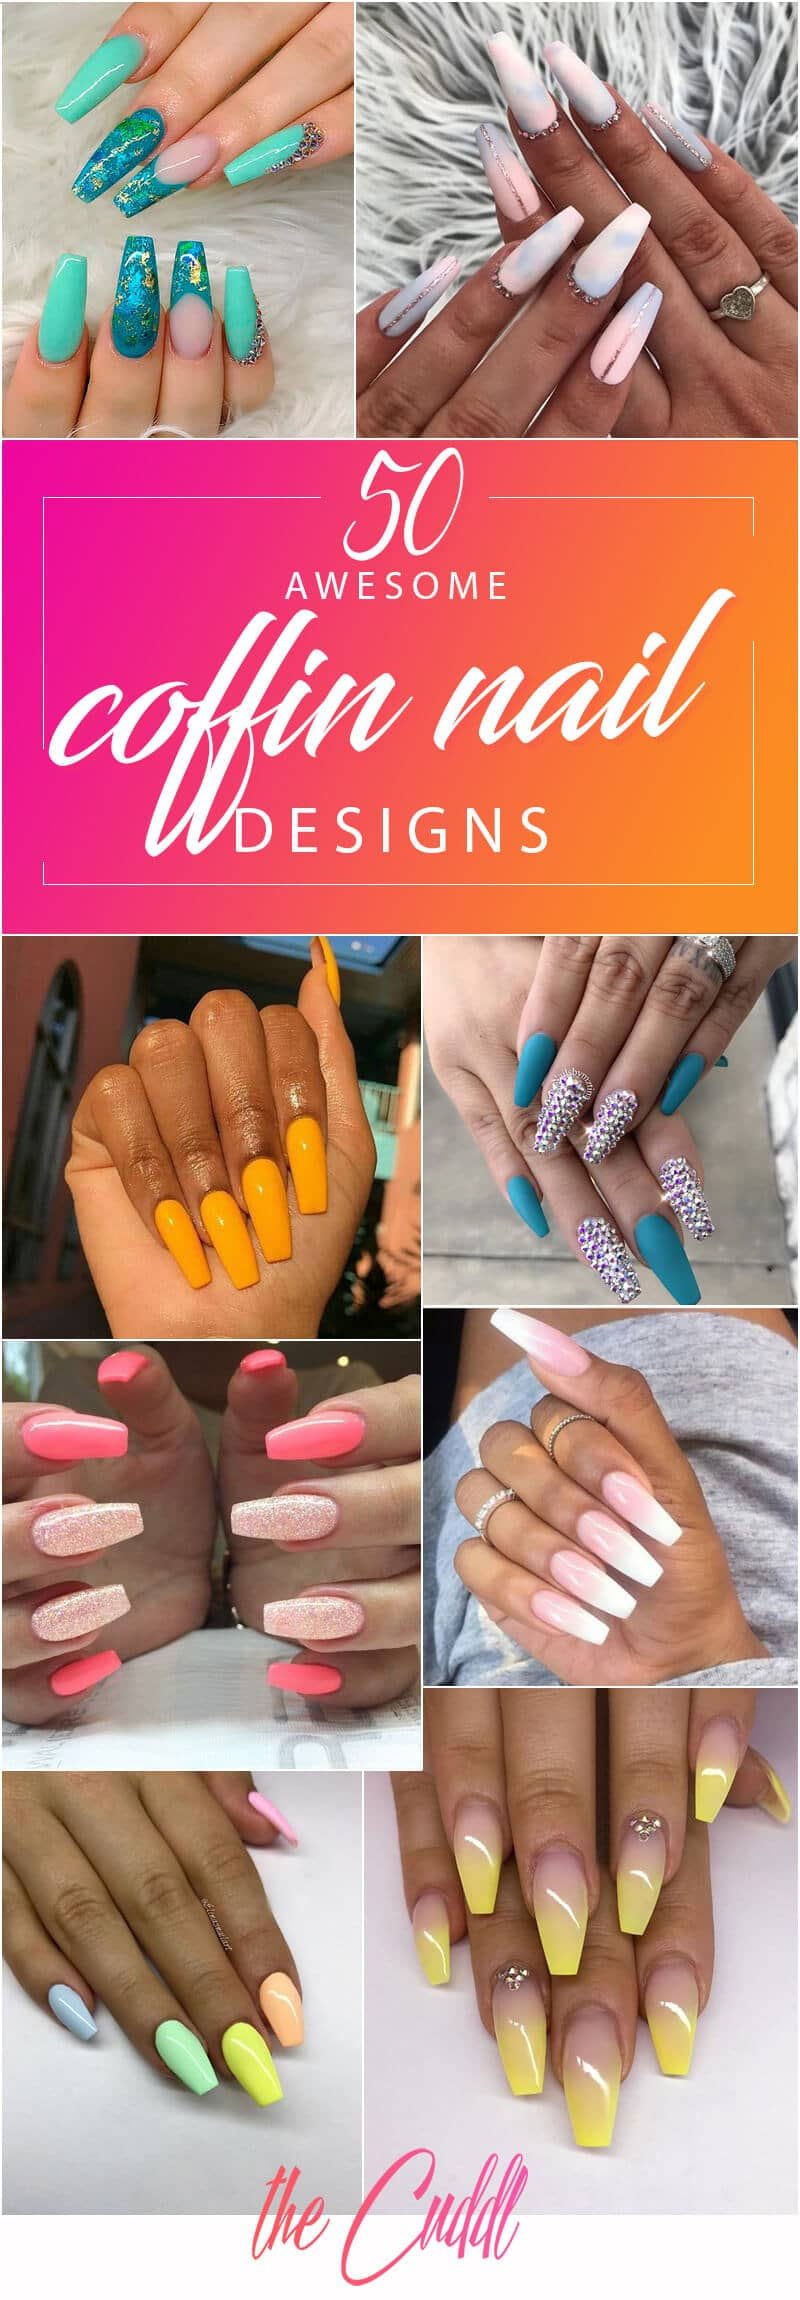 50 Awesome Coffin Nails Designs You\u0027ll Flip For in 2019